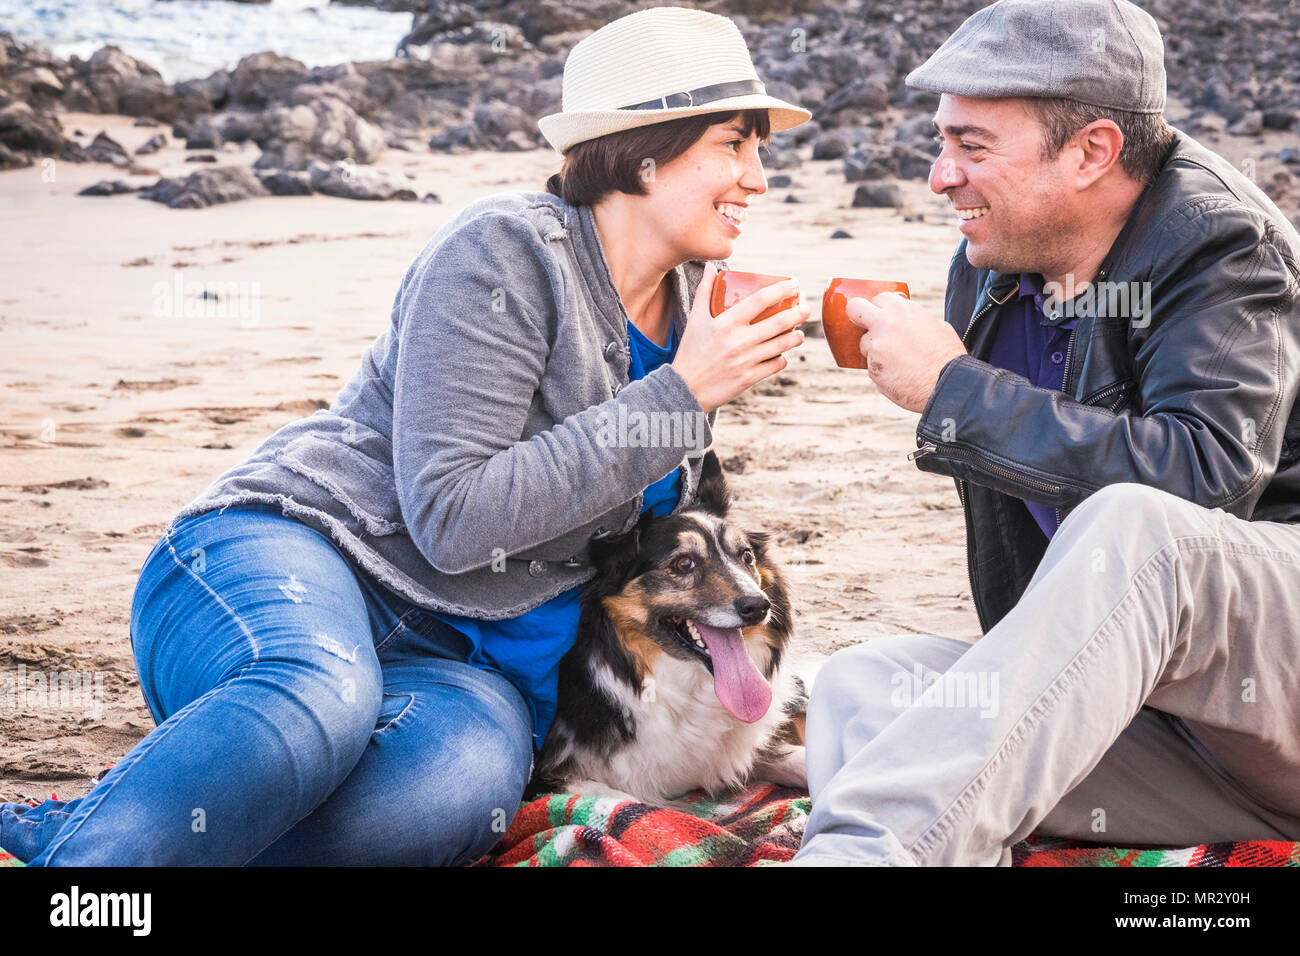 family with a border collie dog doing pic nic activity on the beach in vacation, summer lifestyle with friends concept. old style and vintage filter.  Stock Photo